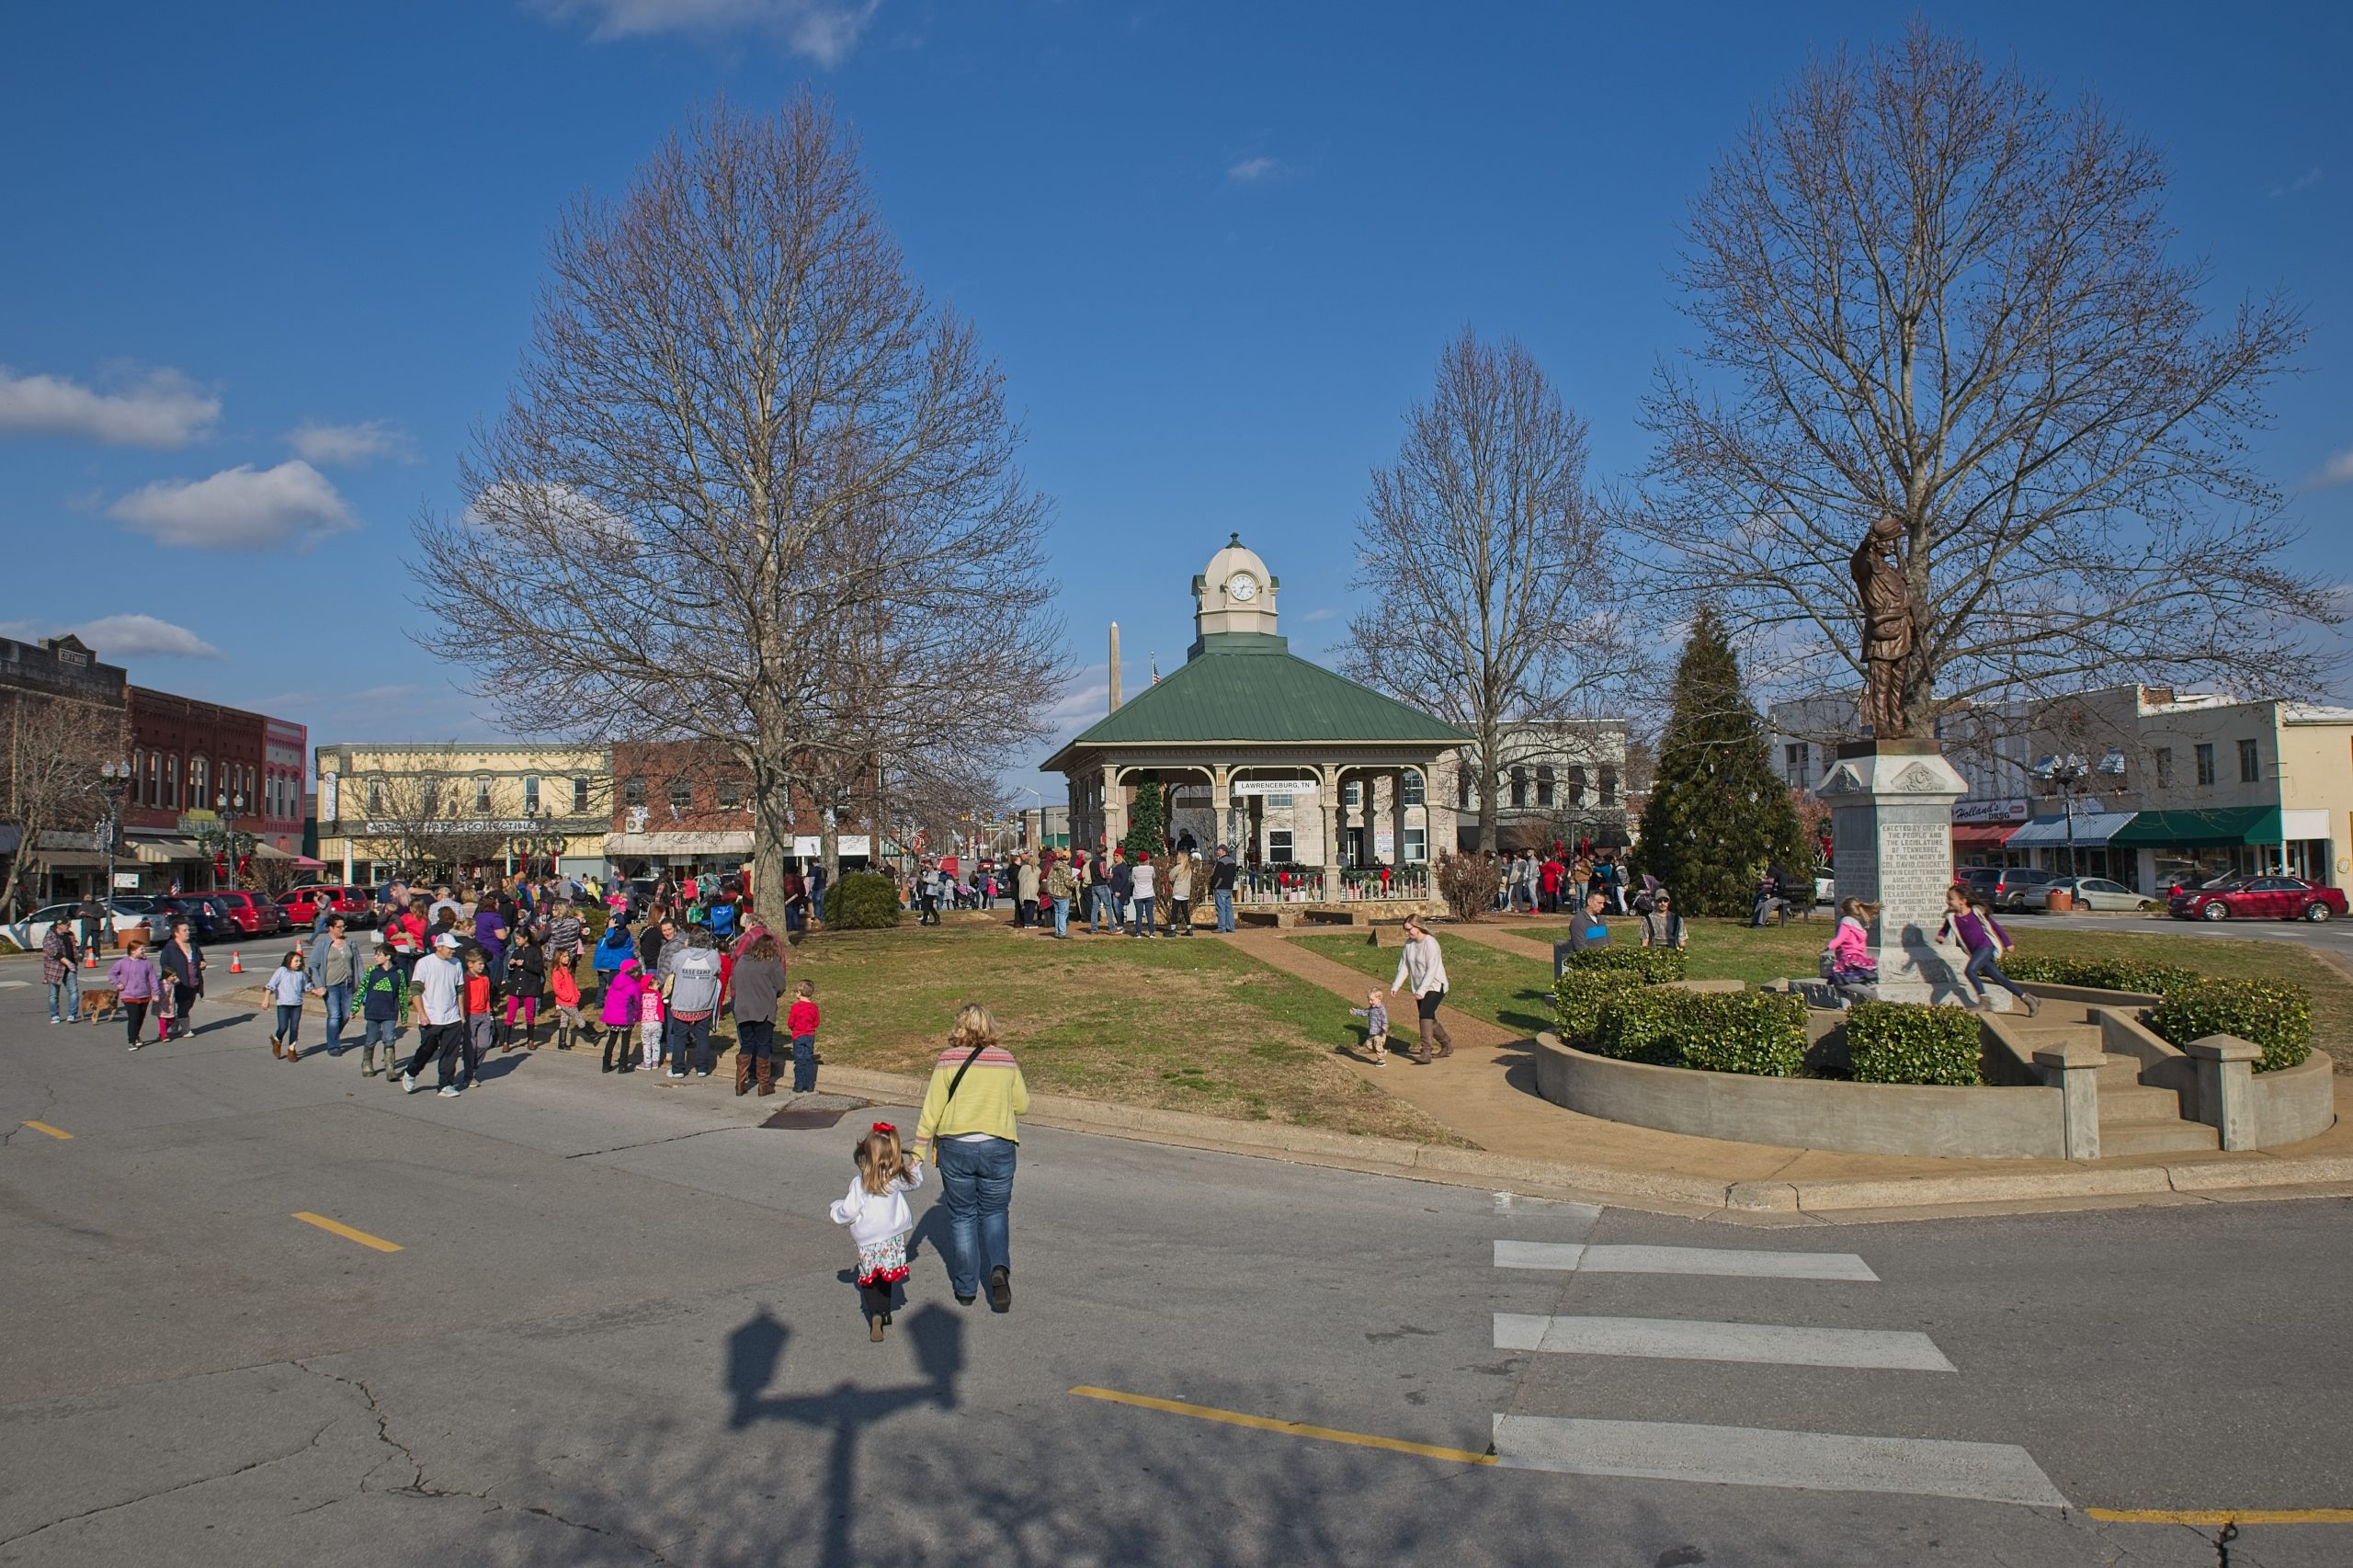 cora's christmas in lawrenceburg tn draws a lot of people